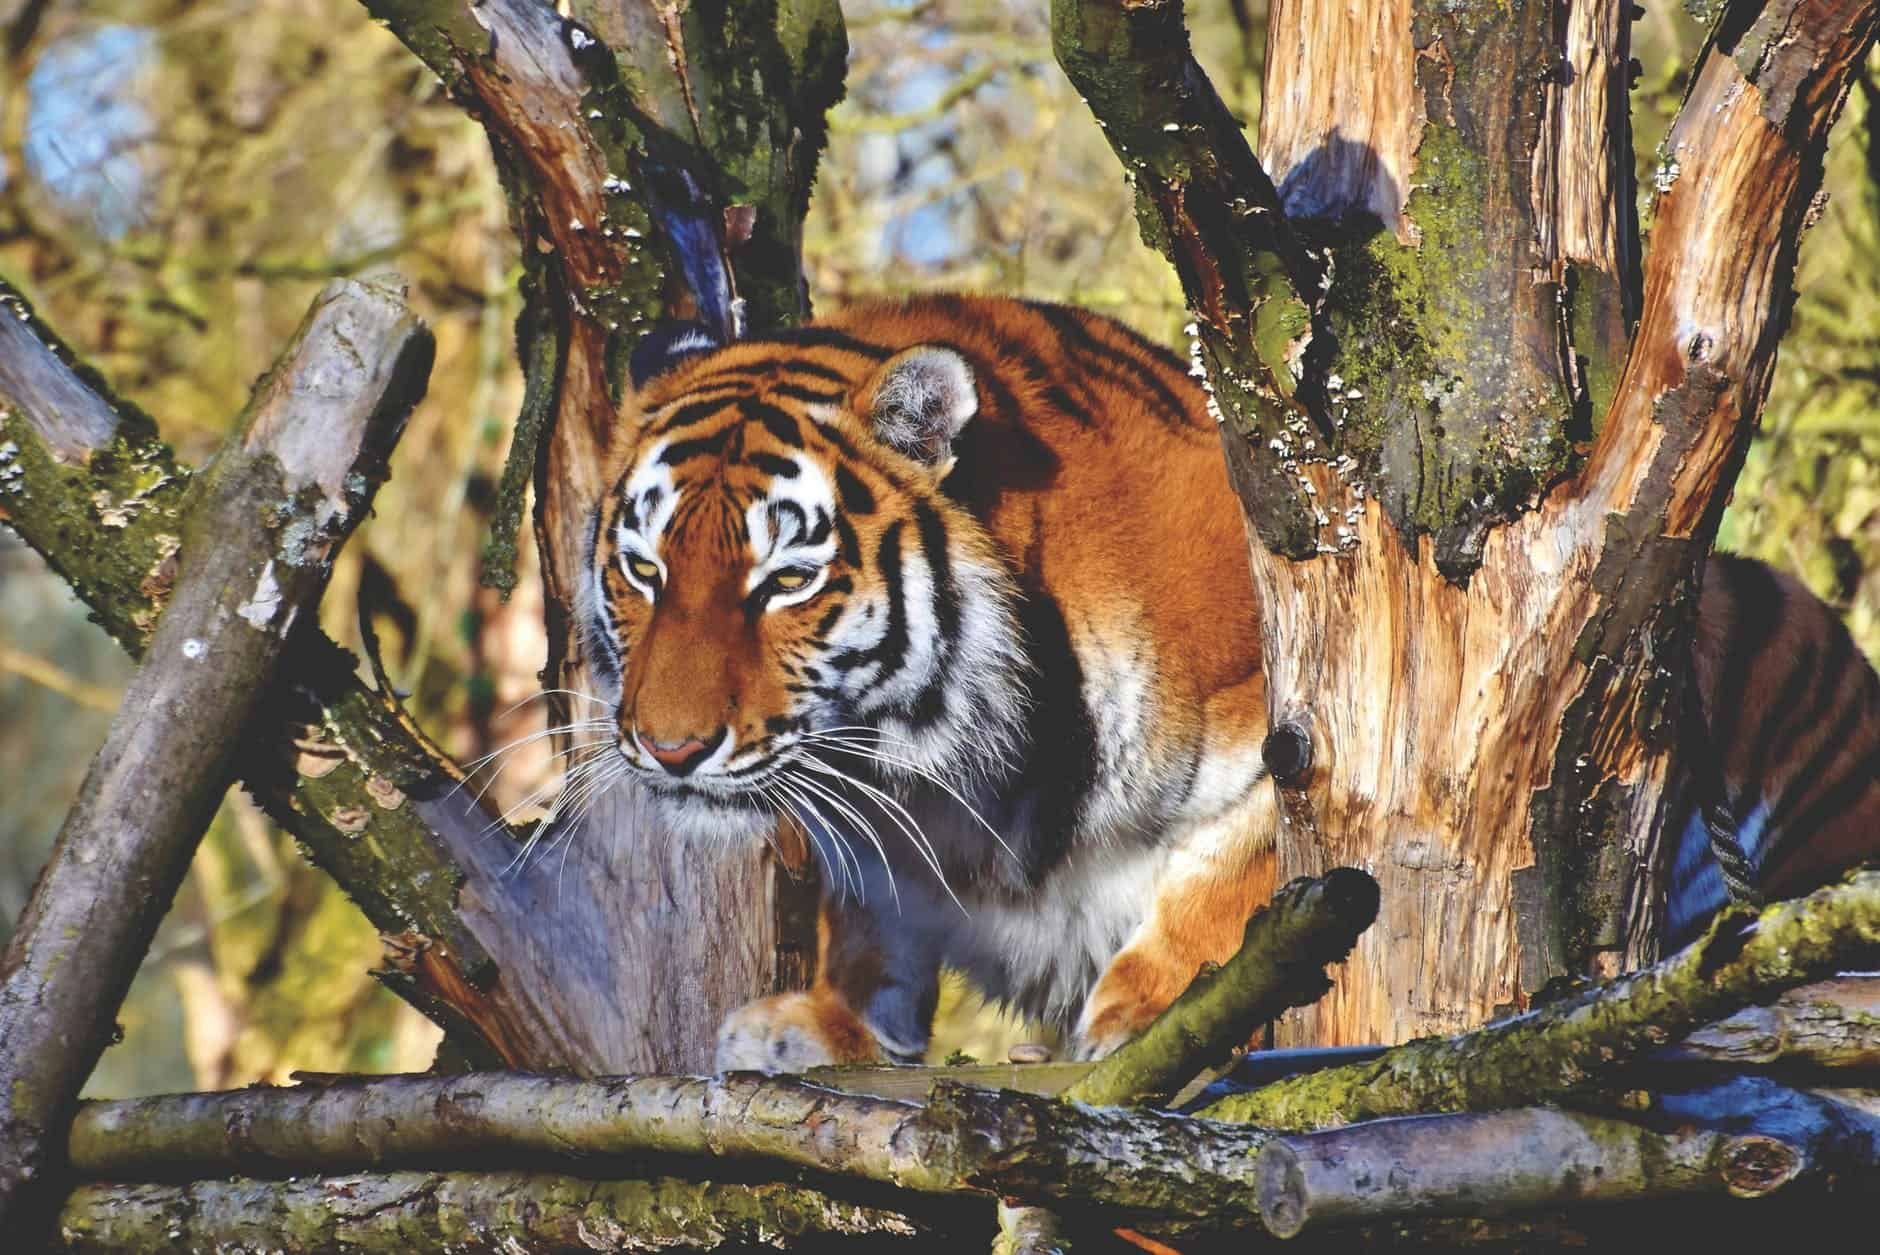 Where does Bengal Tiger live?